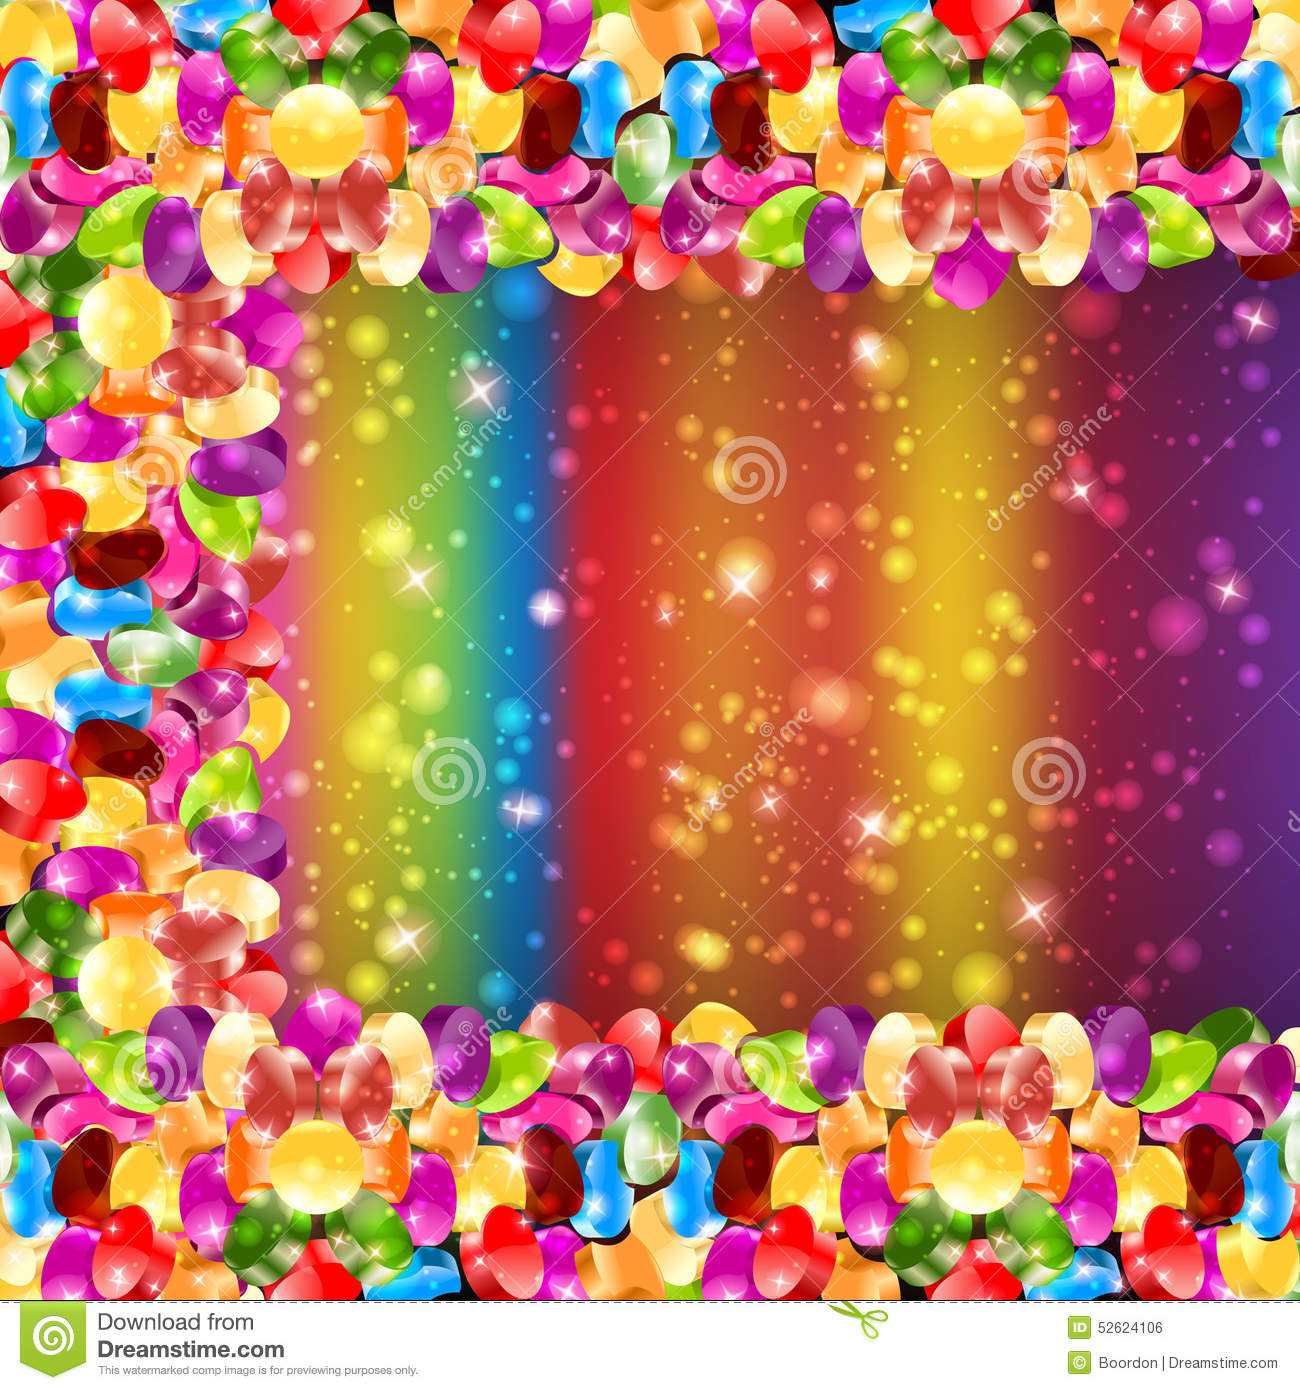 Glossy candy color rainbow background